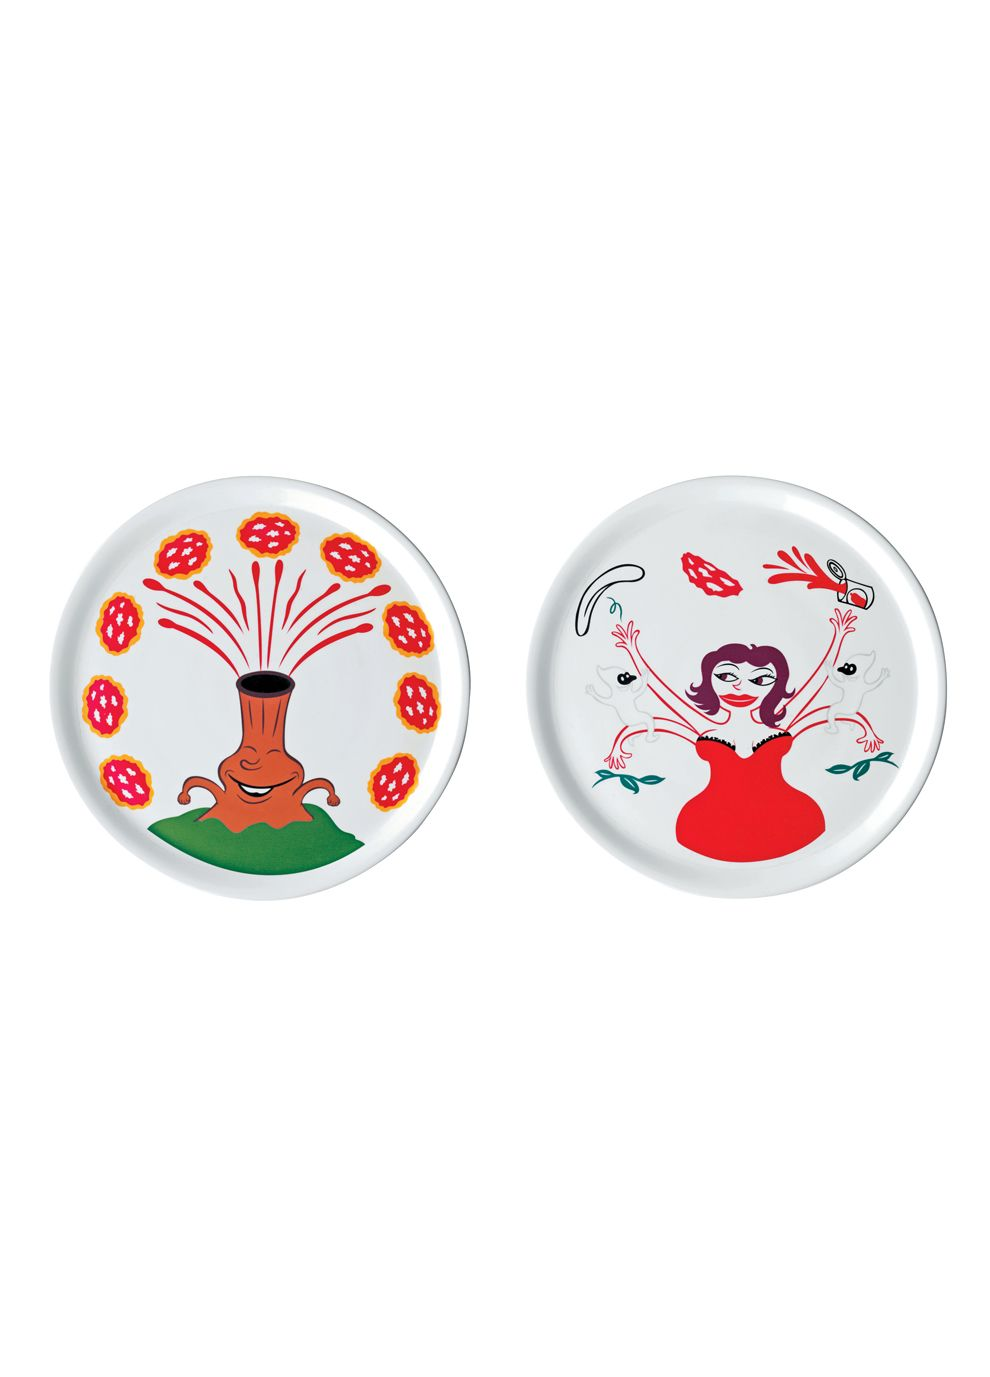 Alessi  Pummaroriella Piatti  Pizza Plate Set By Alessi Products  sc 1 st  Pinterest & Set of 2 Pizza Plates on livingExclusive | Can I have this ...